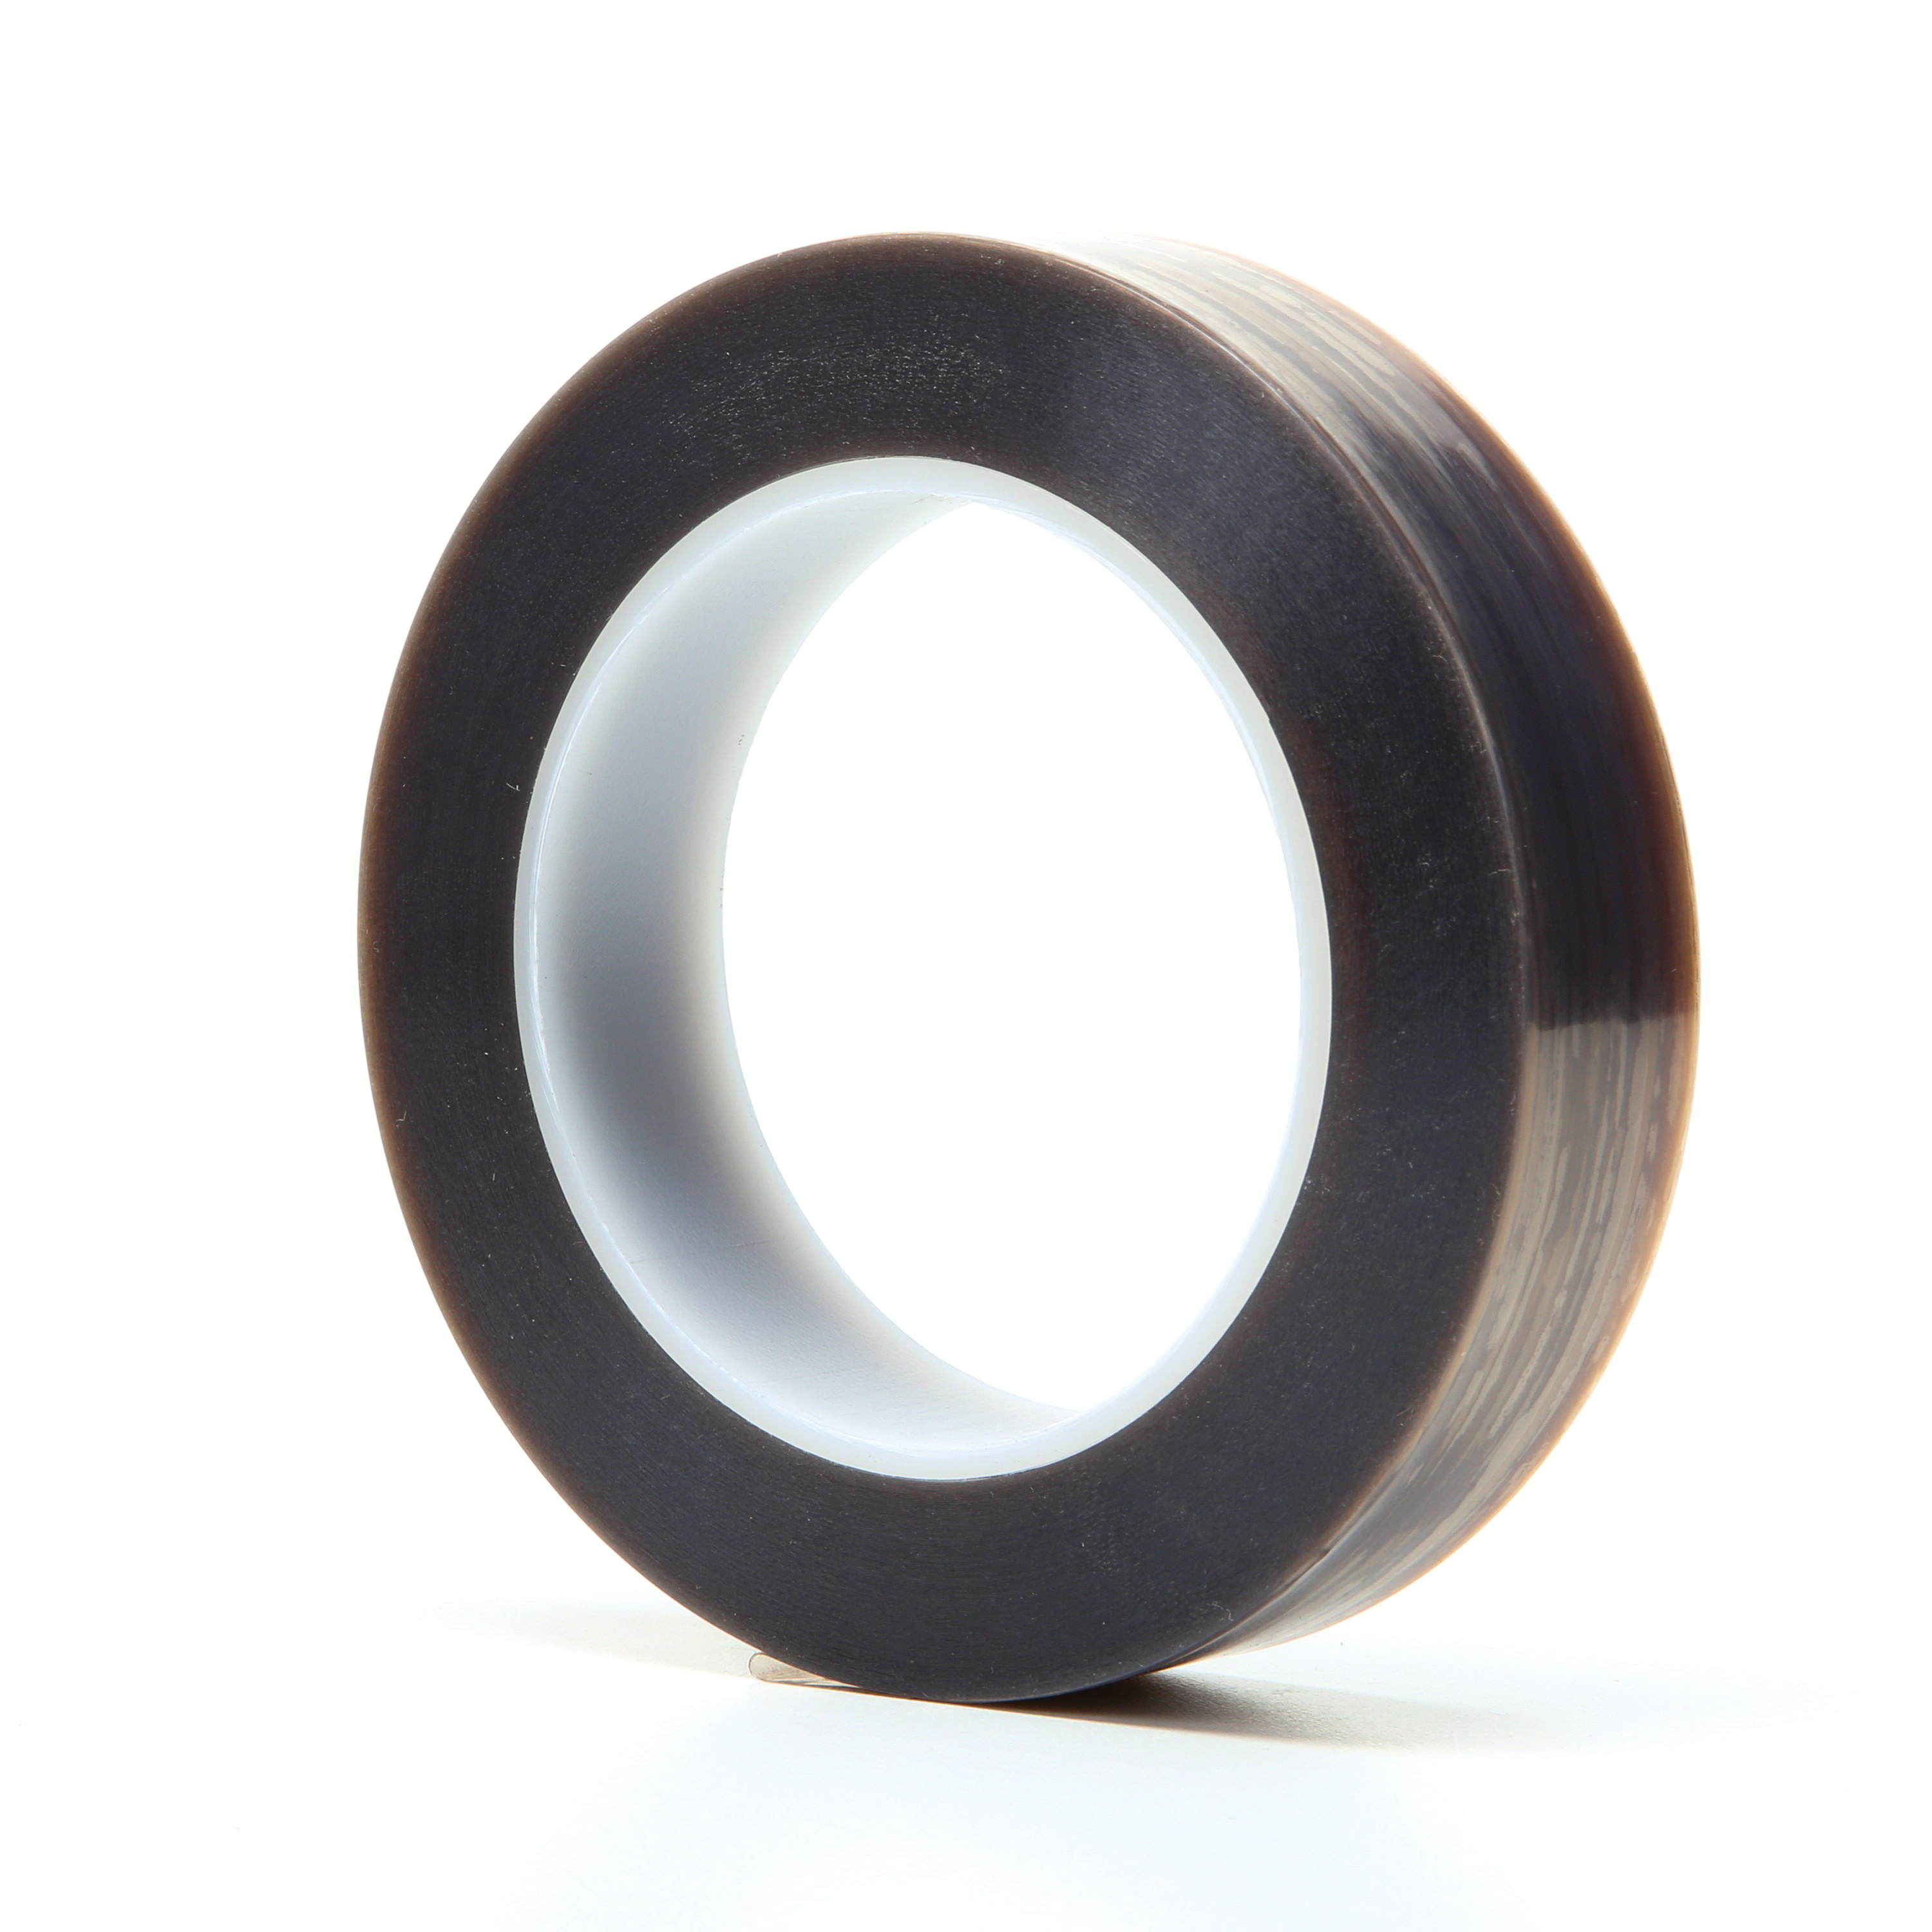 3M™ 021200-16146 Film Tape, 36 yd L x 1 in W, 6.7 mil THK, Silicone Adhesive, 5 mil Extruded PTFE Backing, Gray